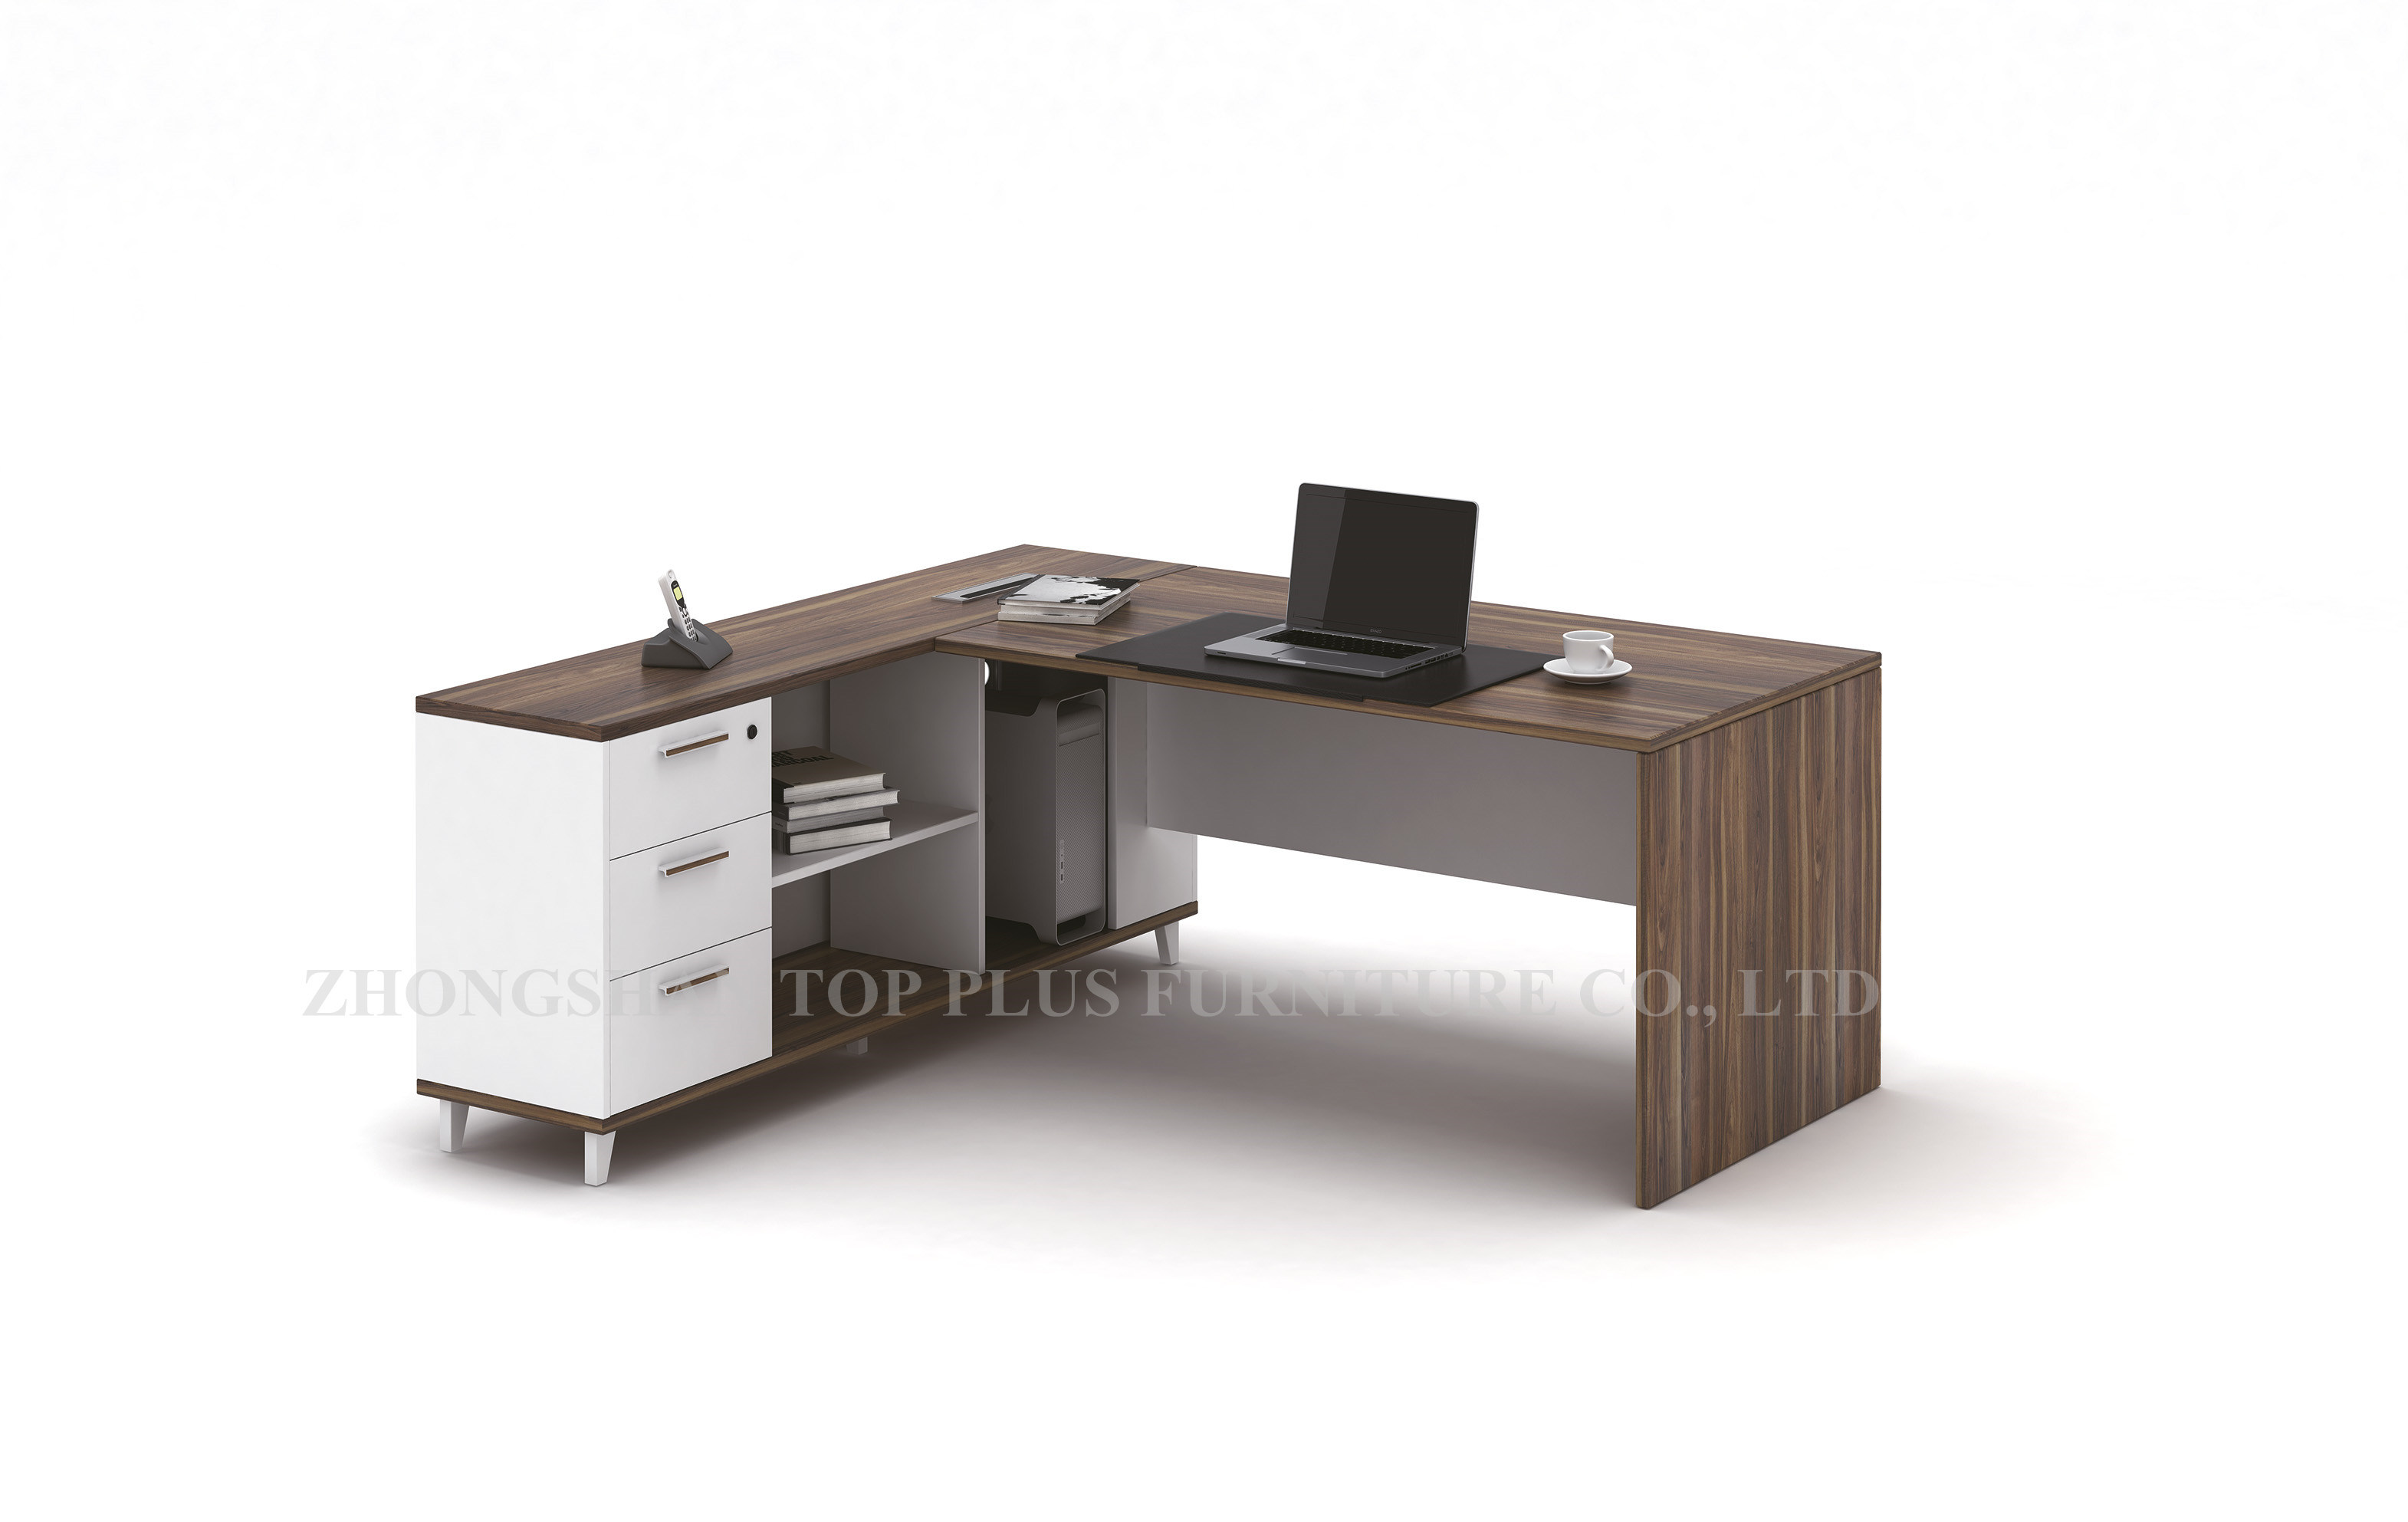 Image of: China New Design Modern Office Desk L Shape Office Table M T1617 China Office Table Wooden Office Table